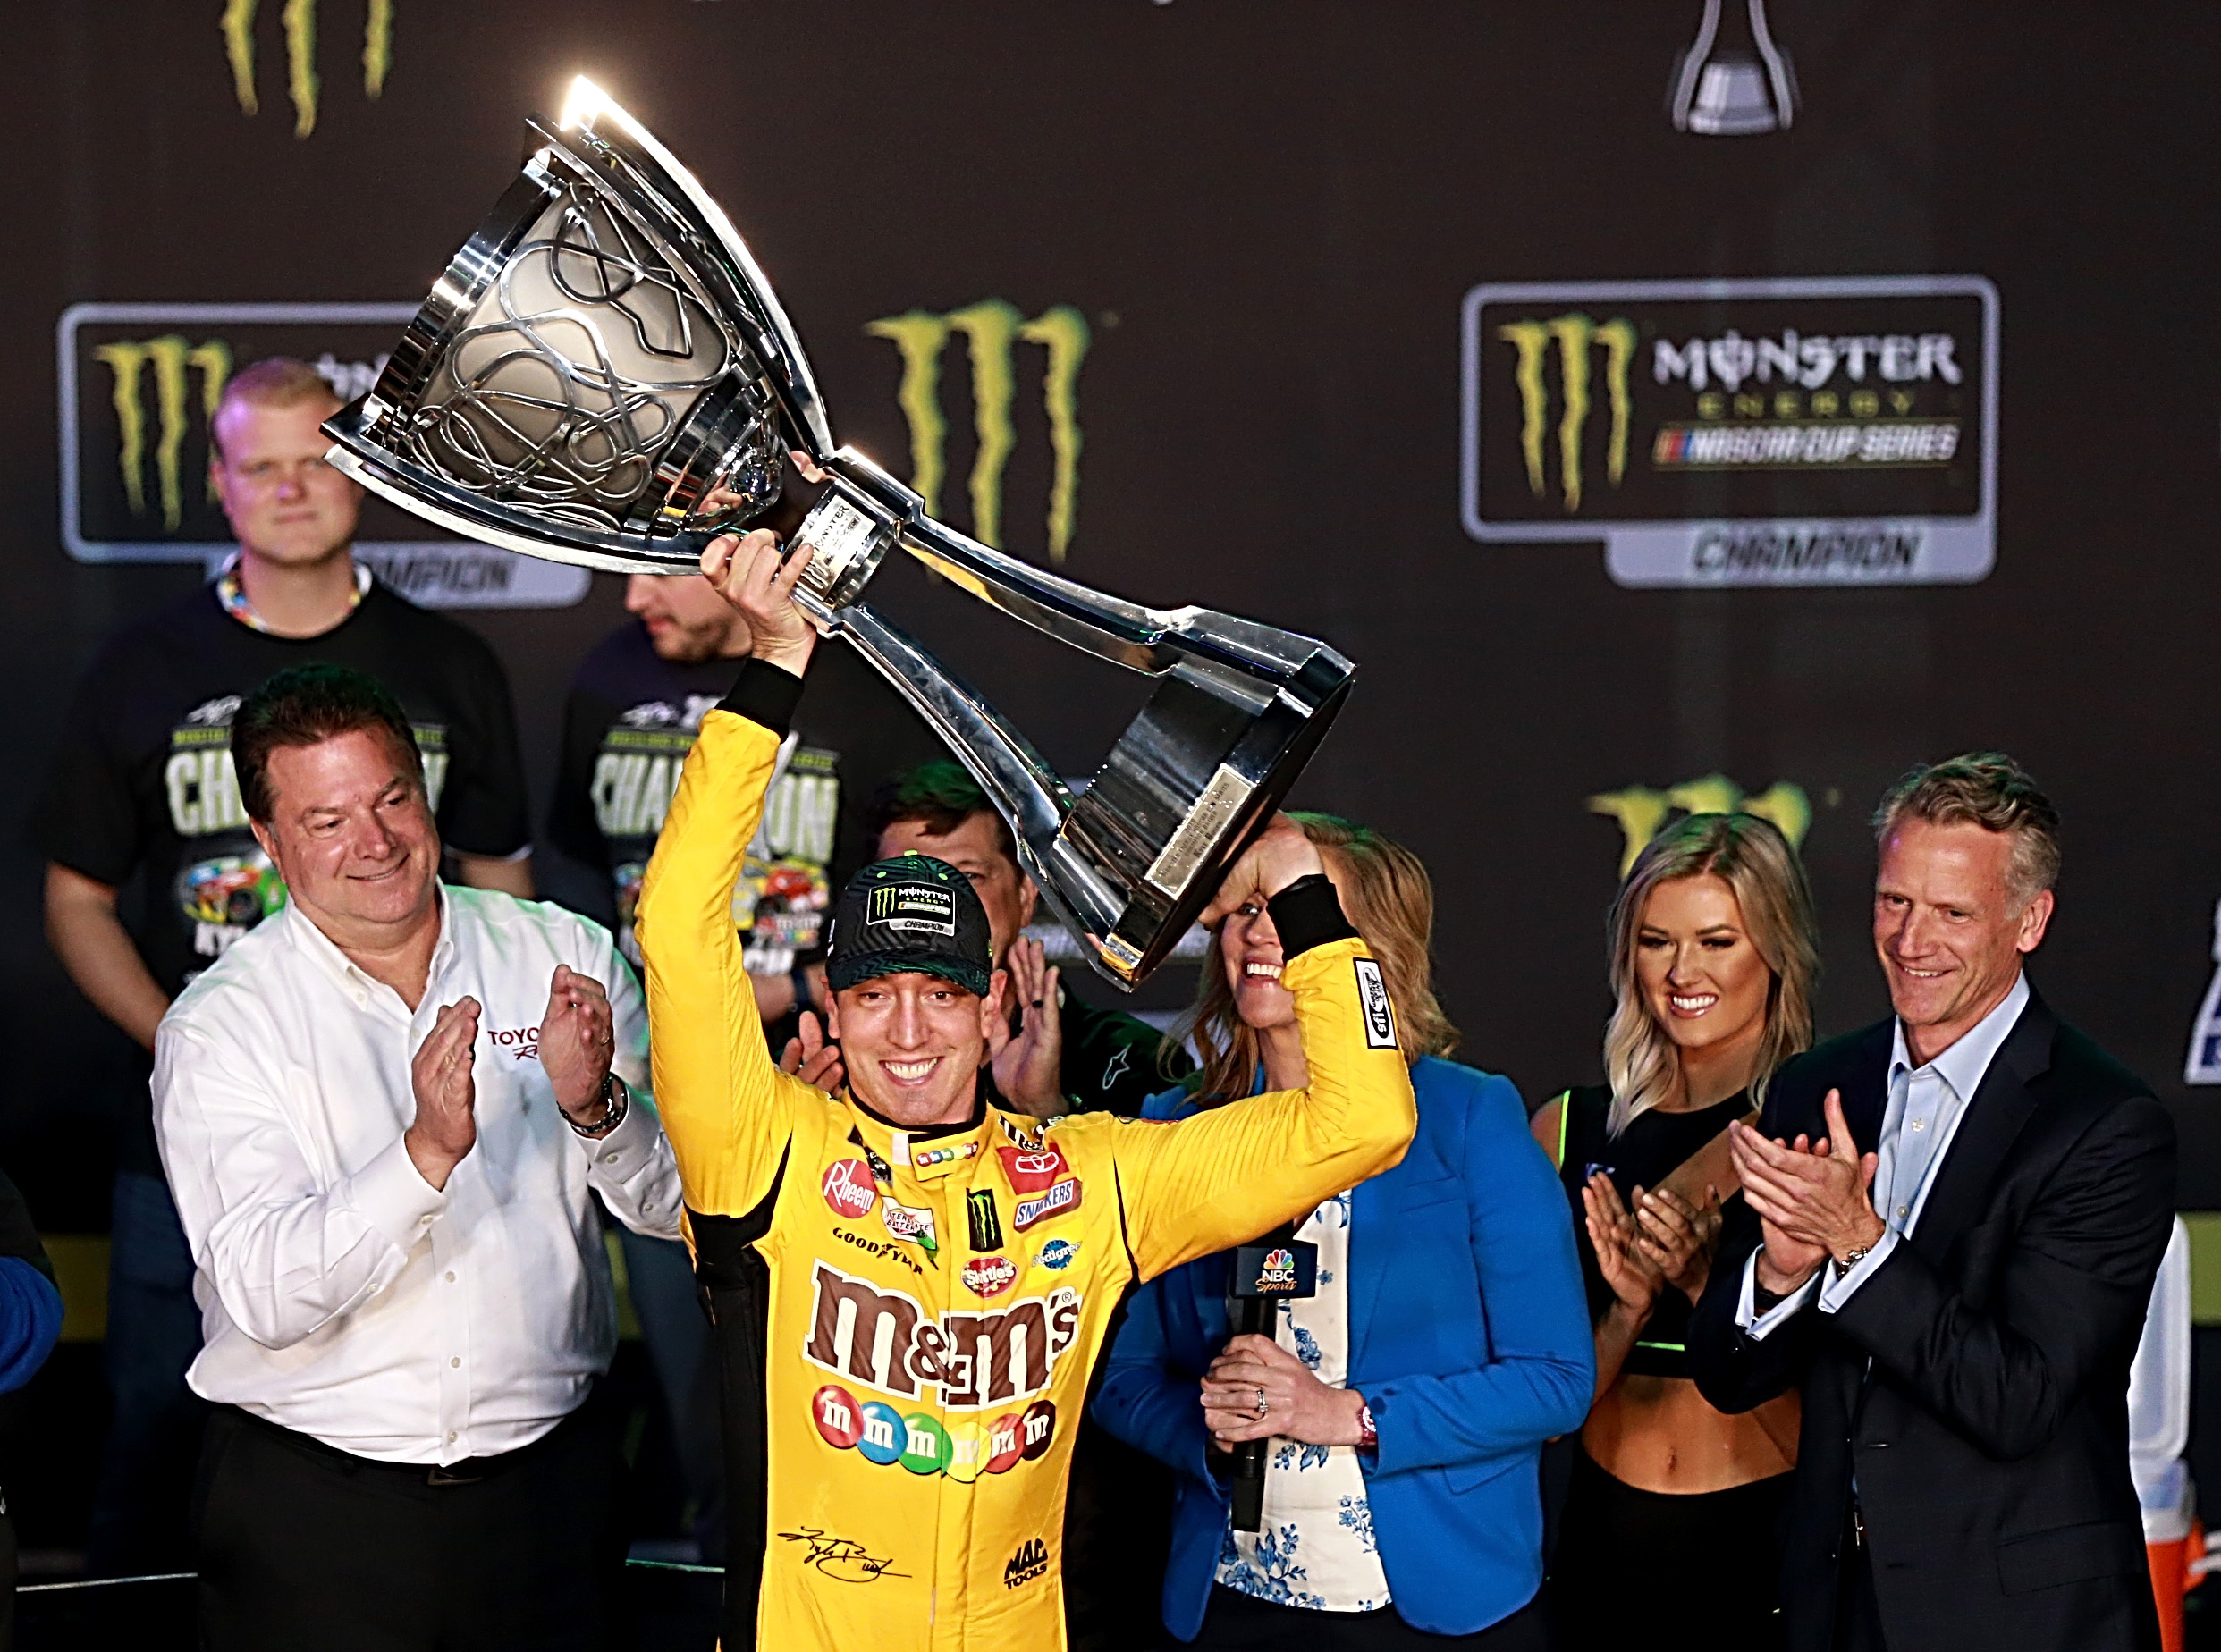 M&M's Joe Gibbs Racing driver Kyle Busch celebrates in Victory Lane after winning the Monster Energy NASCAR Cup Series Championship and the Monster Energy NASCAR Cup Series Ford EcoBoost 400 at Homestead Speedway